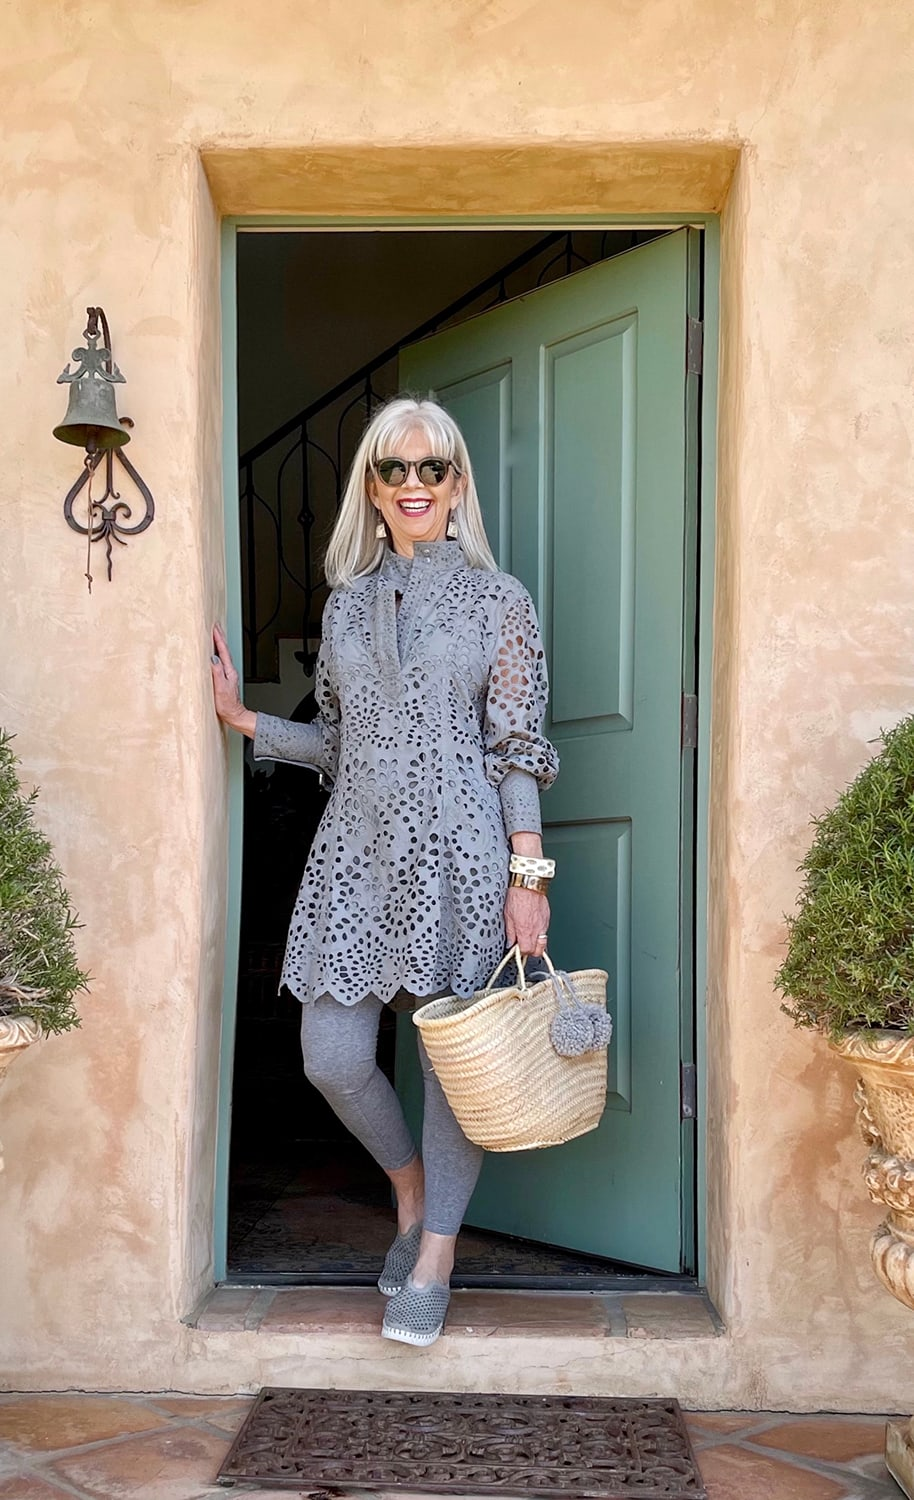 cindy hattersley in H&M eyelet dress, leggings and Ilsa Jacobson tulip